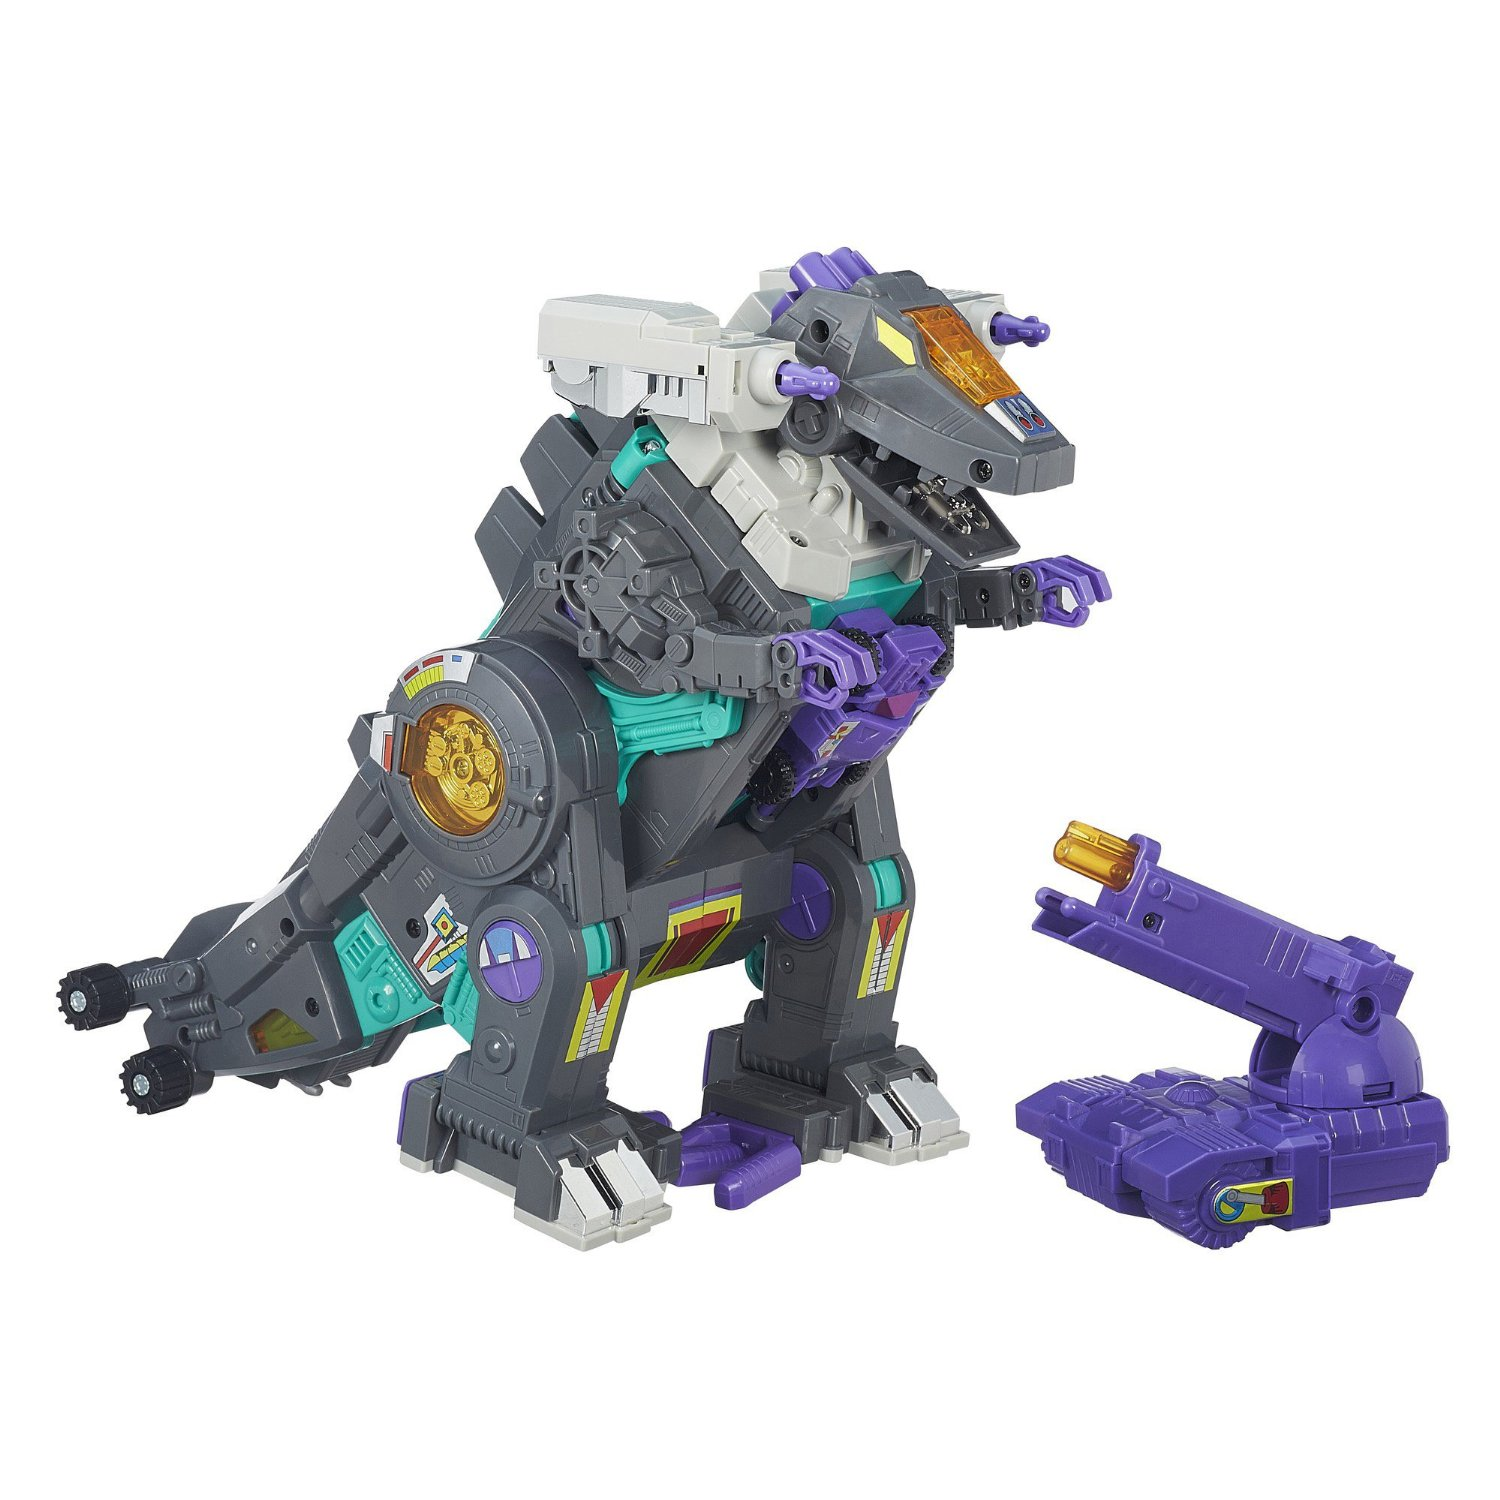 Platinum Edition Trypticon Now In Stock At Amazon Com Transformers News Tfw2005